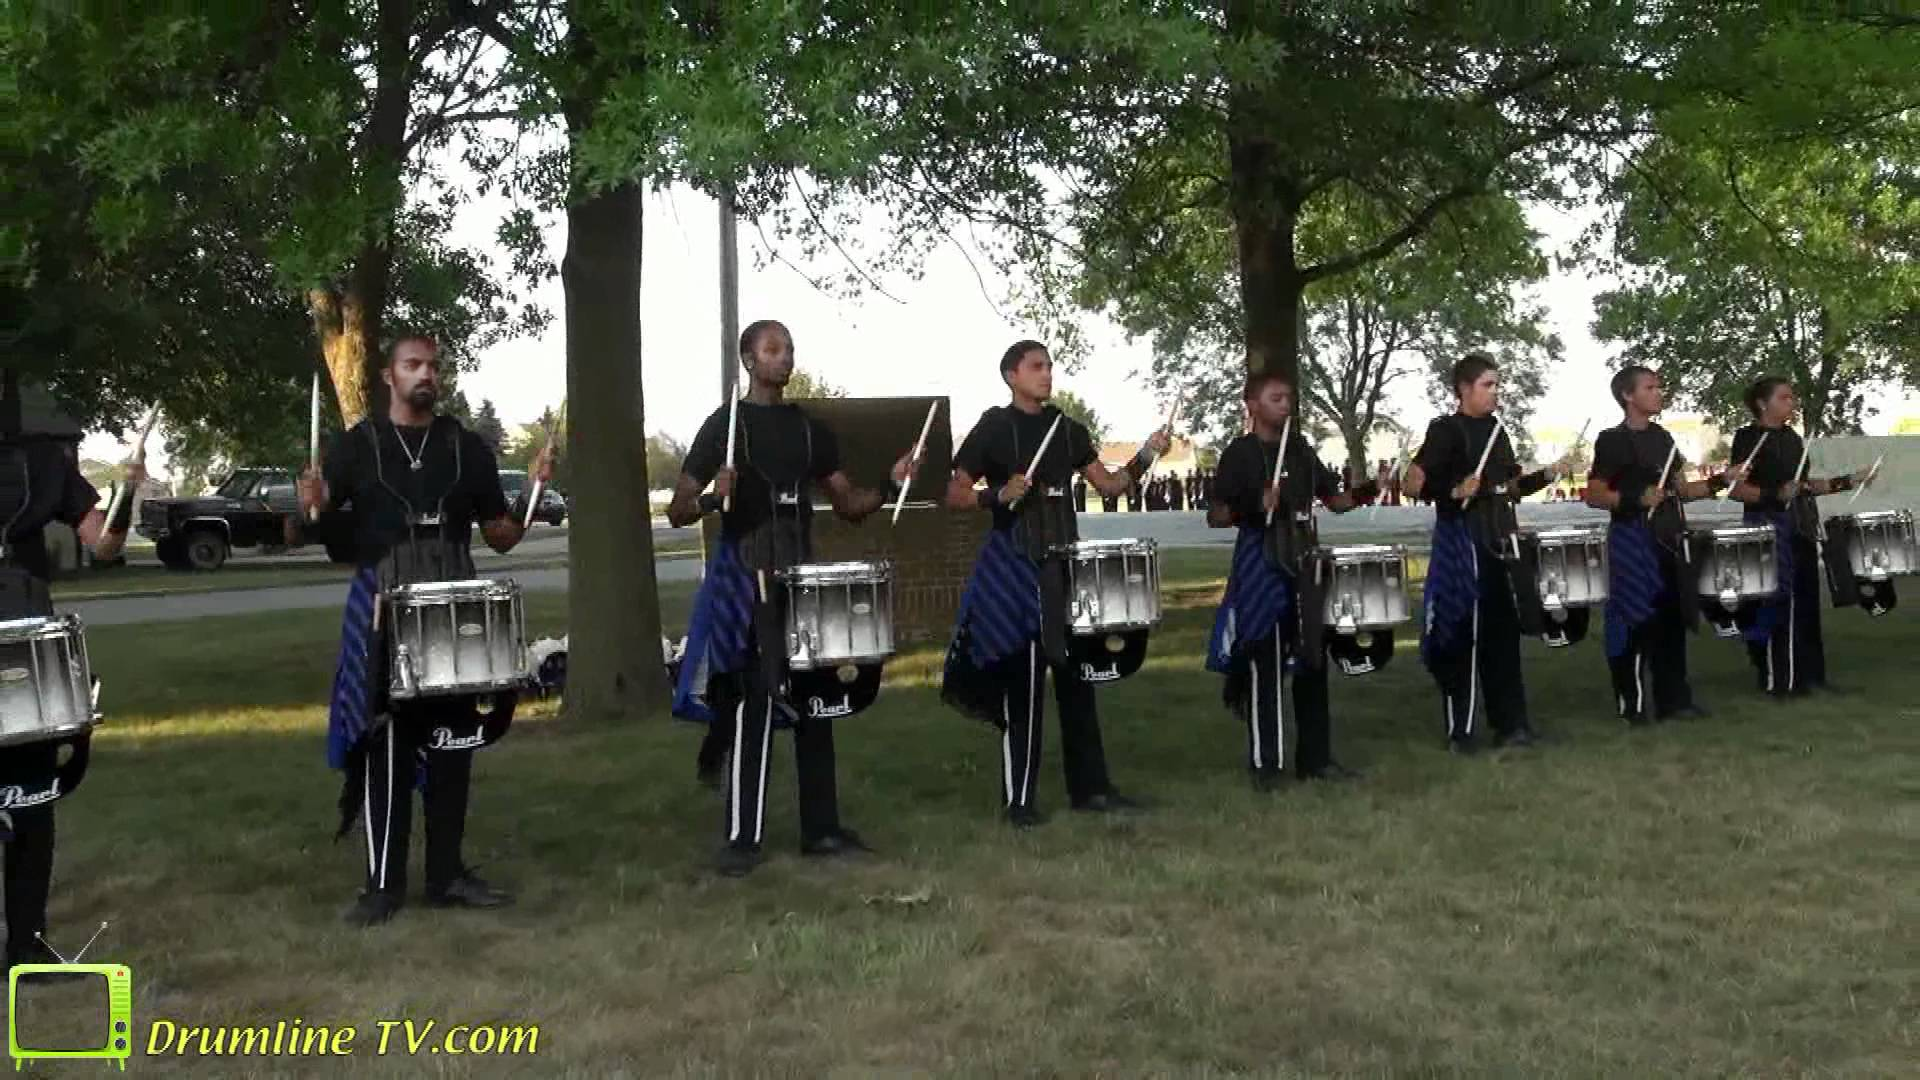 Blue Devils 2012 Drumline – Celebration in Brass Show – Waukee, Iowa 7-10-12